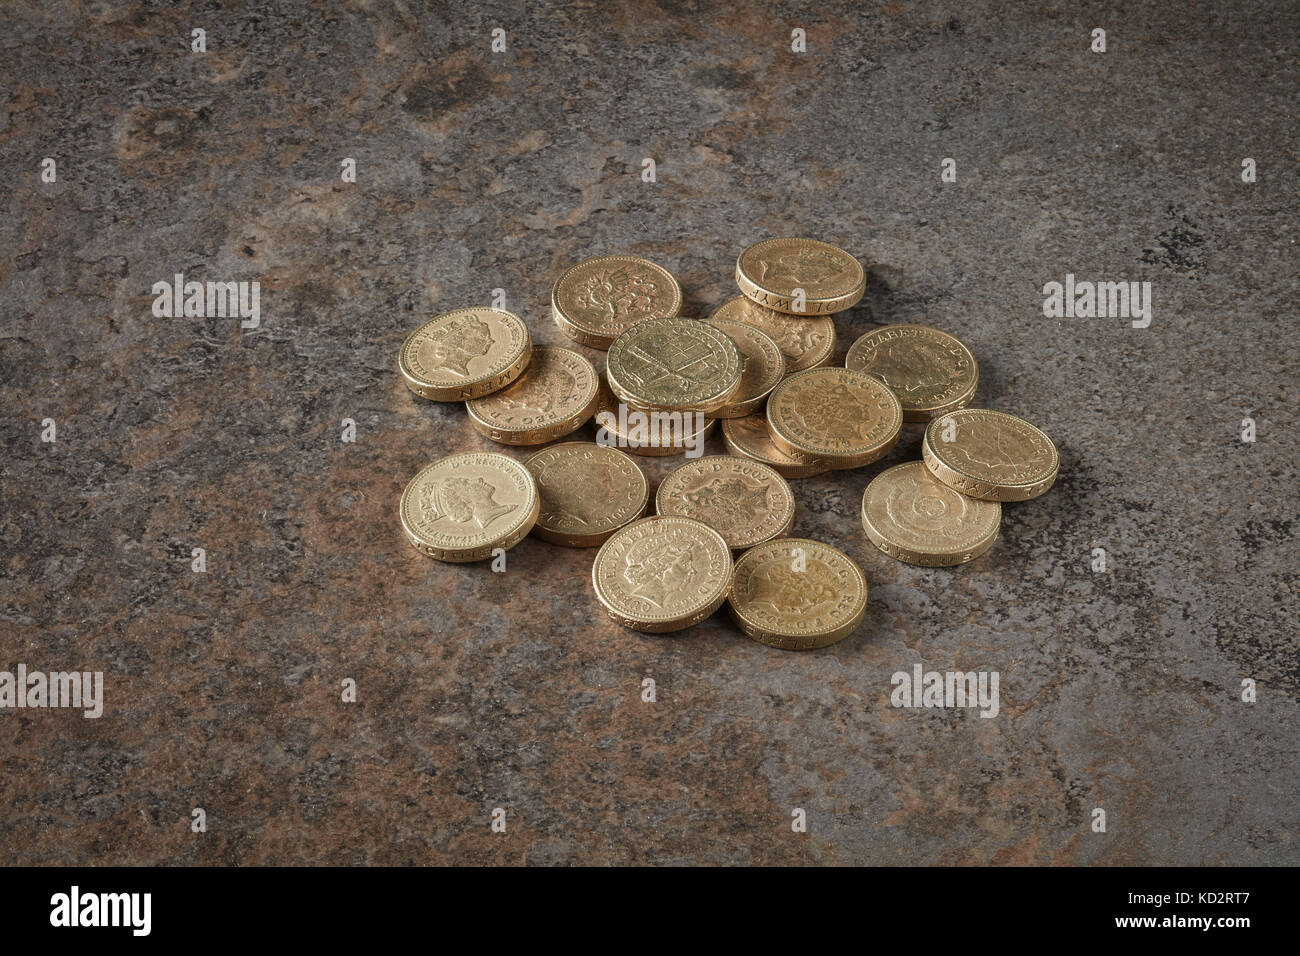 Old style One Pound Coins Cease to be legal tender after 15th October 2017 Stock Photo